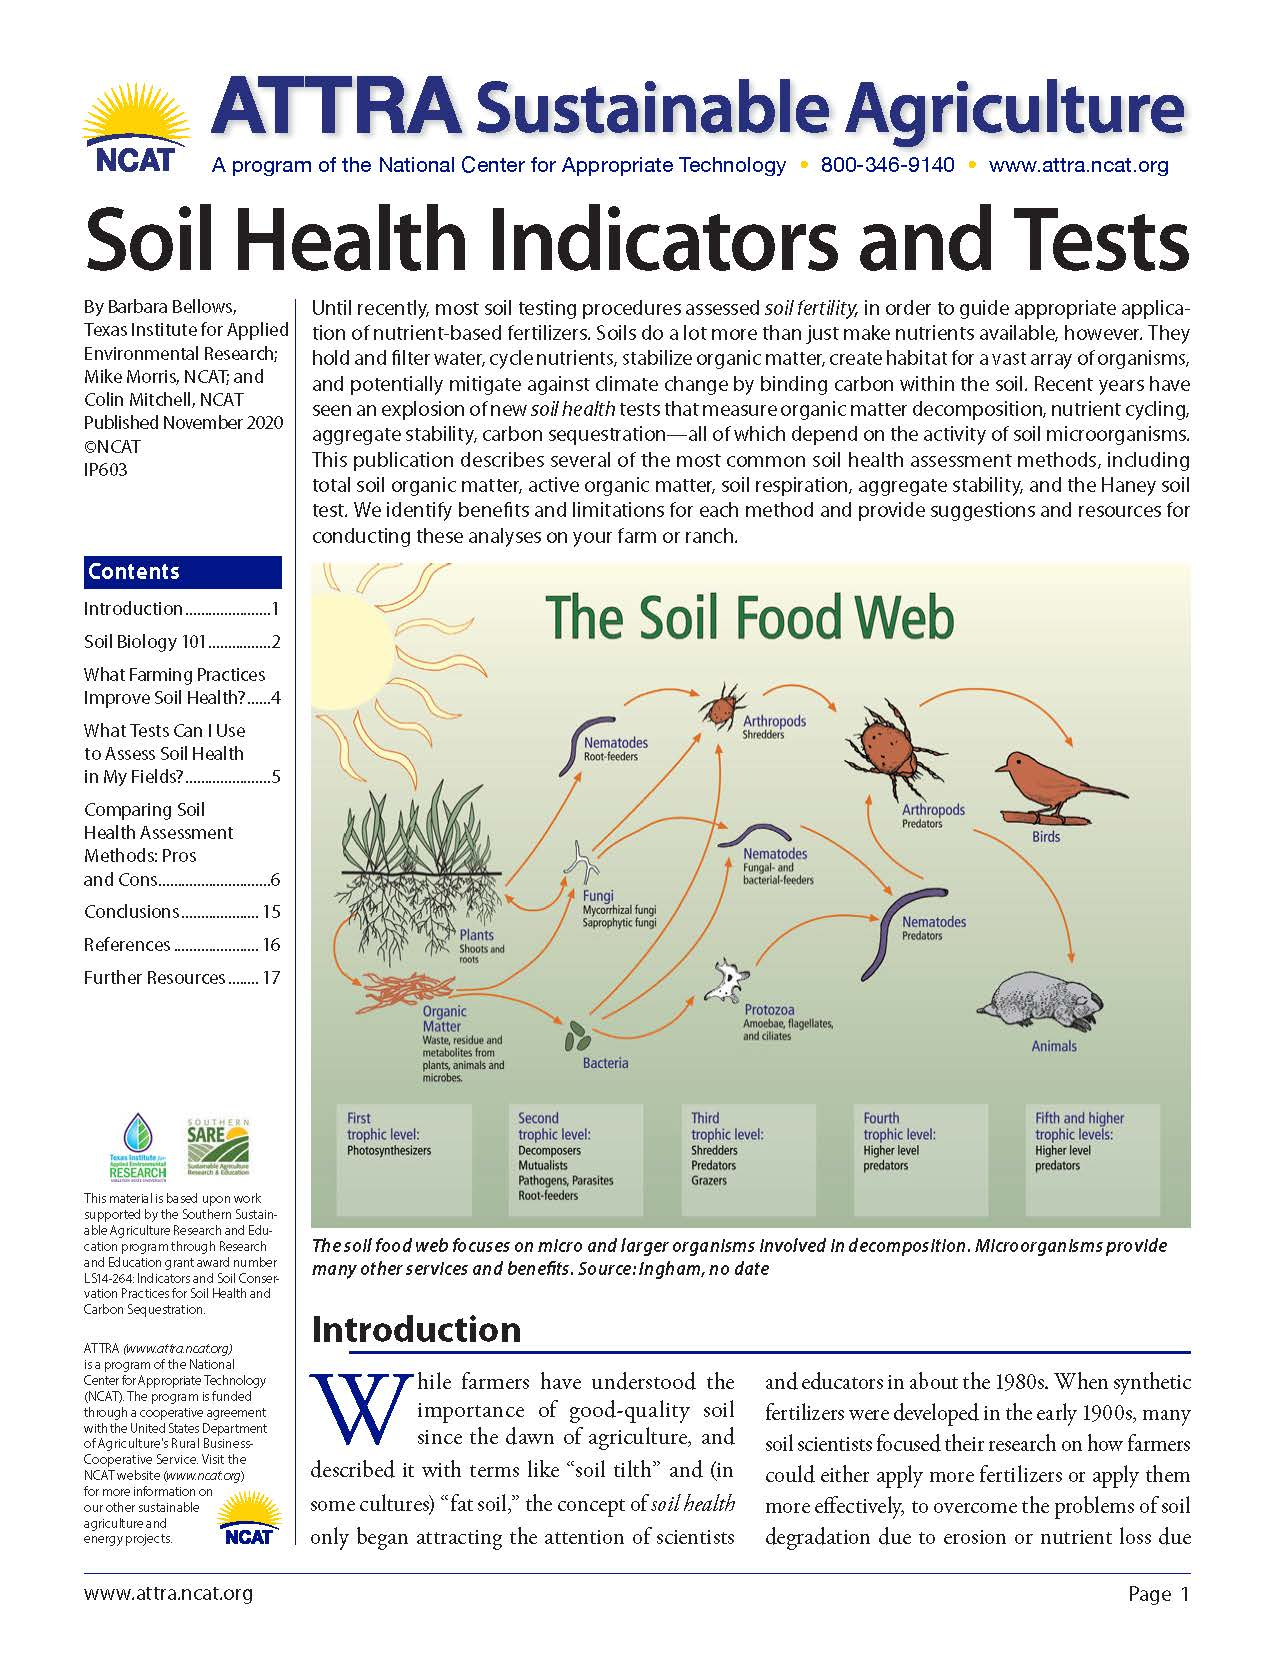 IP603-soil-health-tests_Page_01